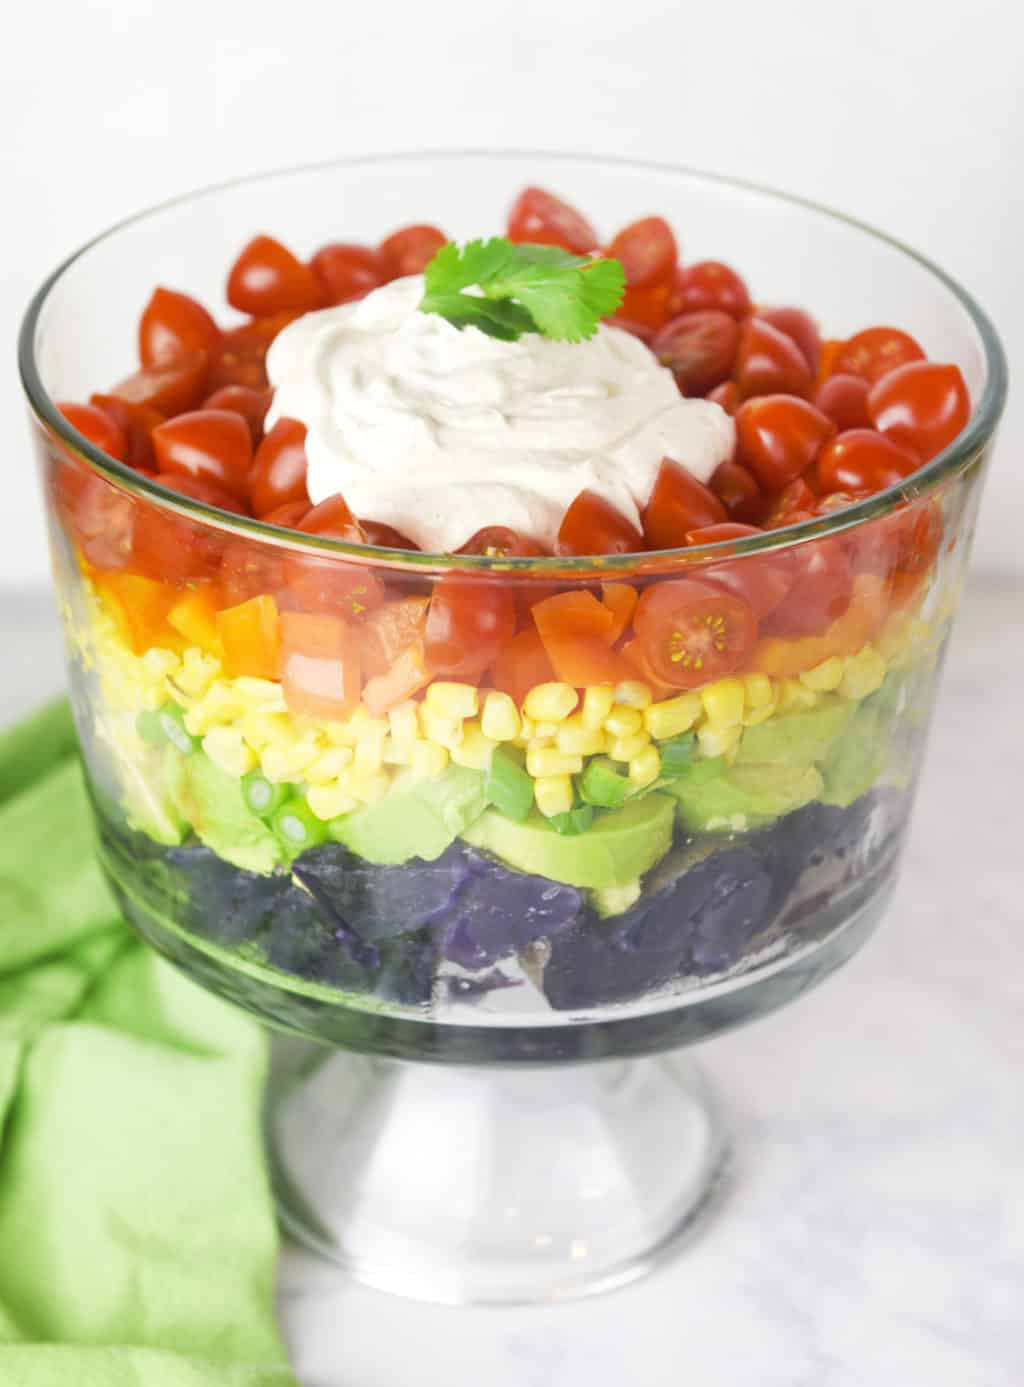 Rainbow Potato Salad! This salad has a southwest flair and is perfect for St. Patrick's day or any rainbow party!